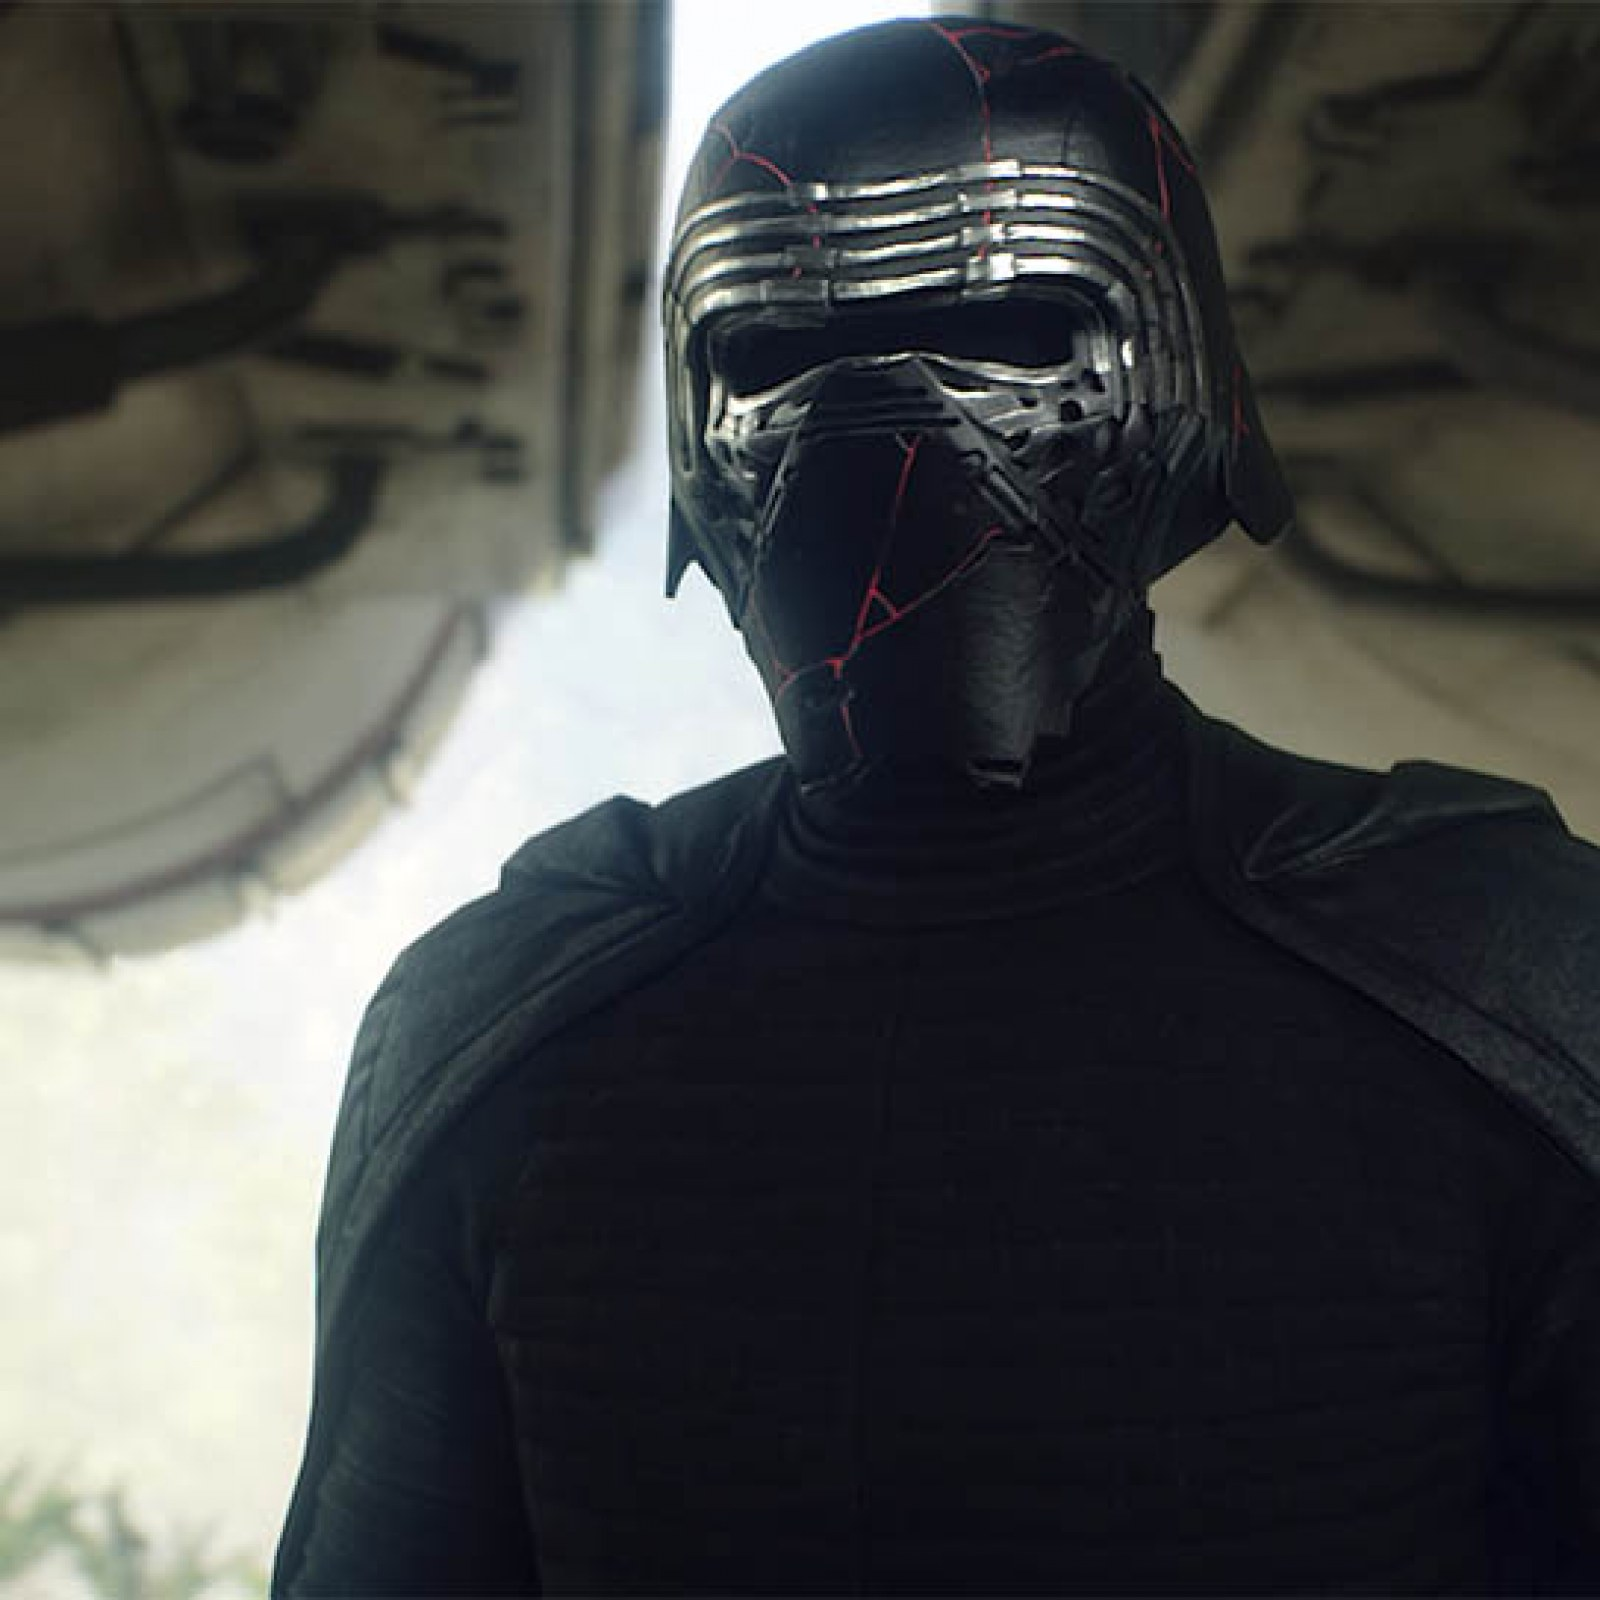 Star Wars Battlefront Ii Rise Of Skywalker Update Releases New Kylo Ren And Sith Troopers Before The Movie